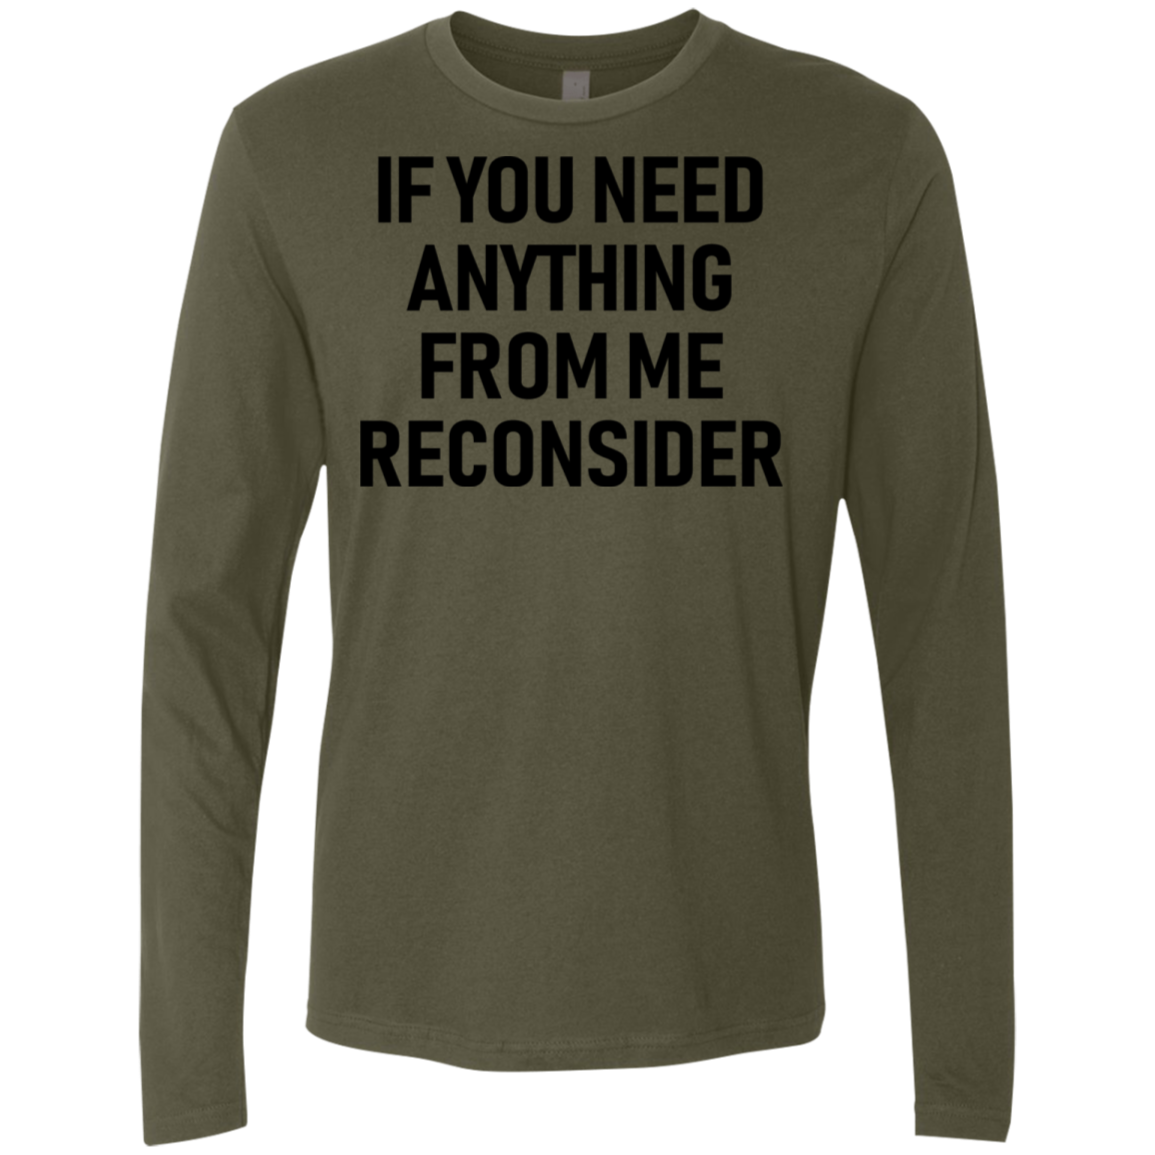 If You Need Anything From Me Reconsider Men's Long Sleeve Tee